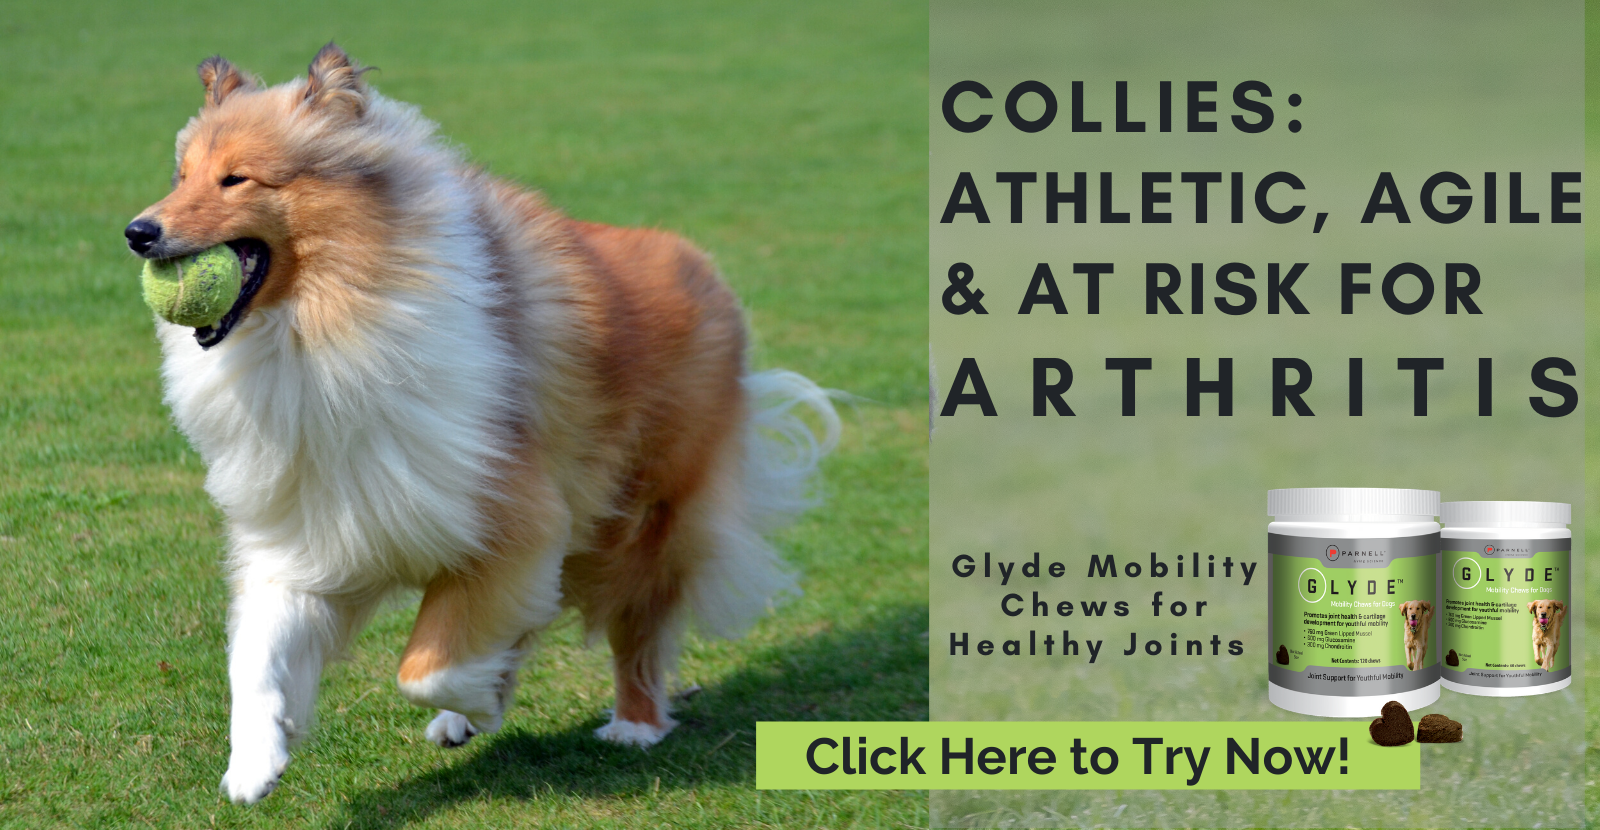 Collies are At Risk for Arthritis